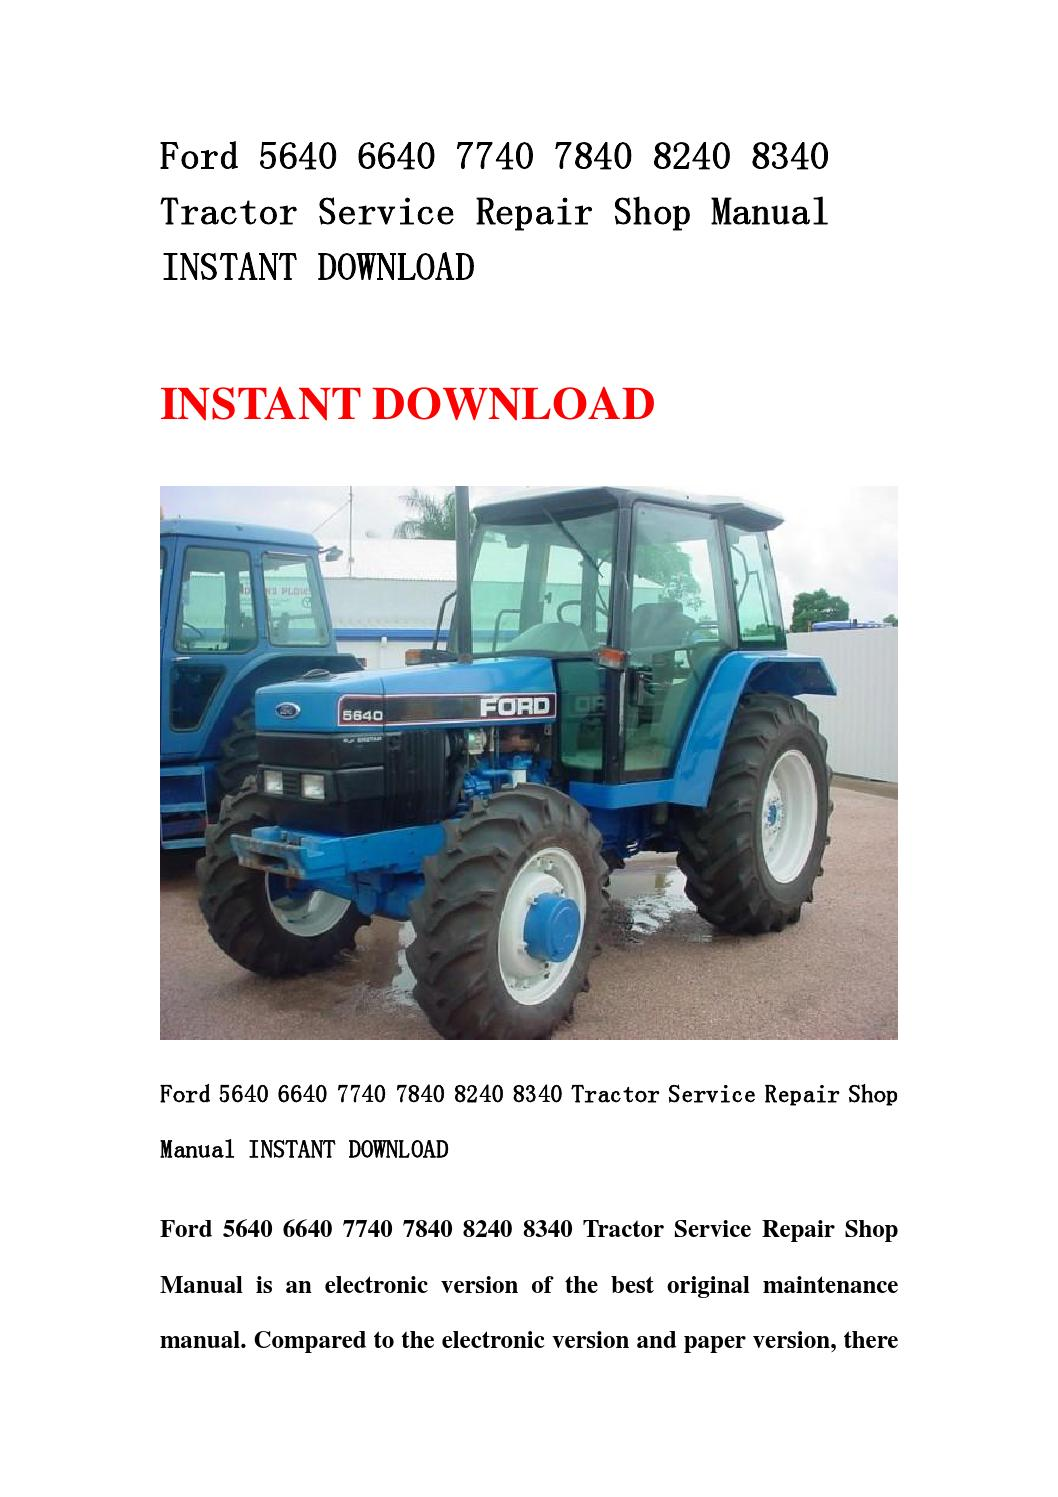 hight resolution of ford 8240 wiring diagram wiring libraryford 5640 6640 7740 7840 8240 8340 tractor service repair shop